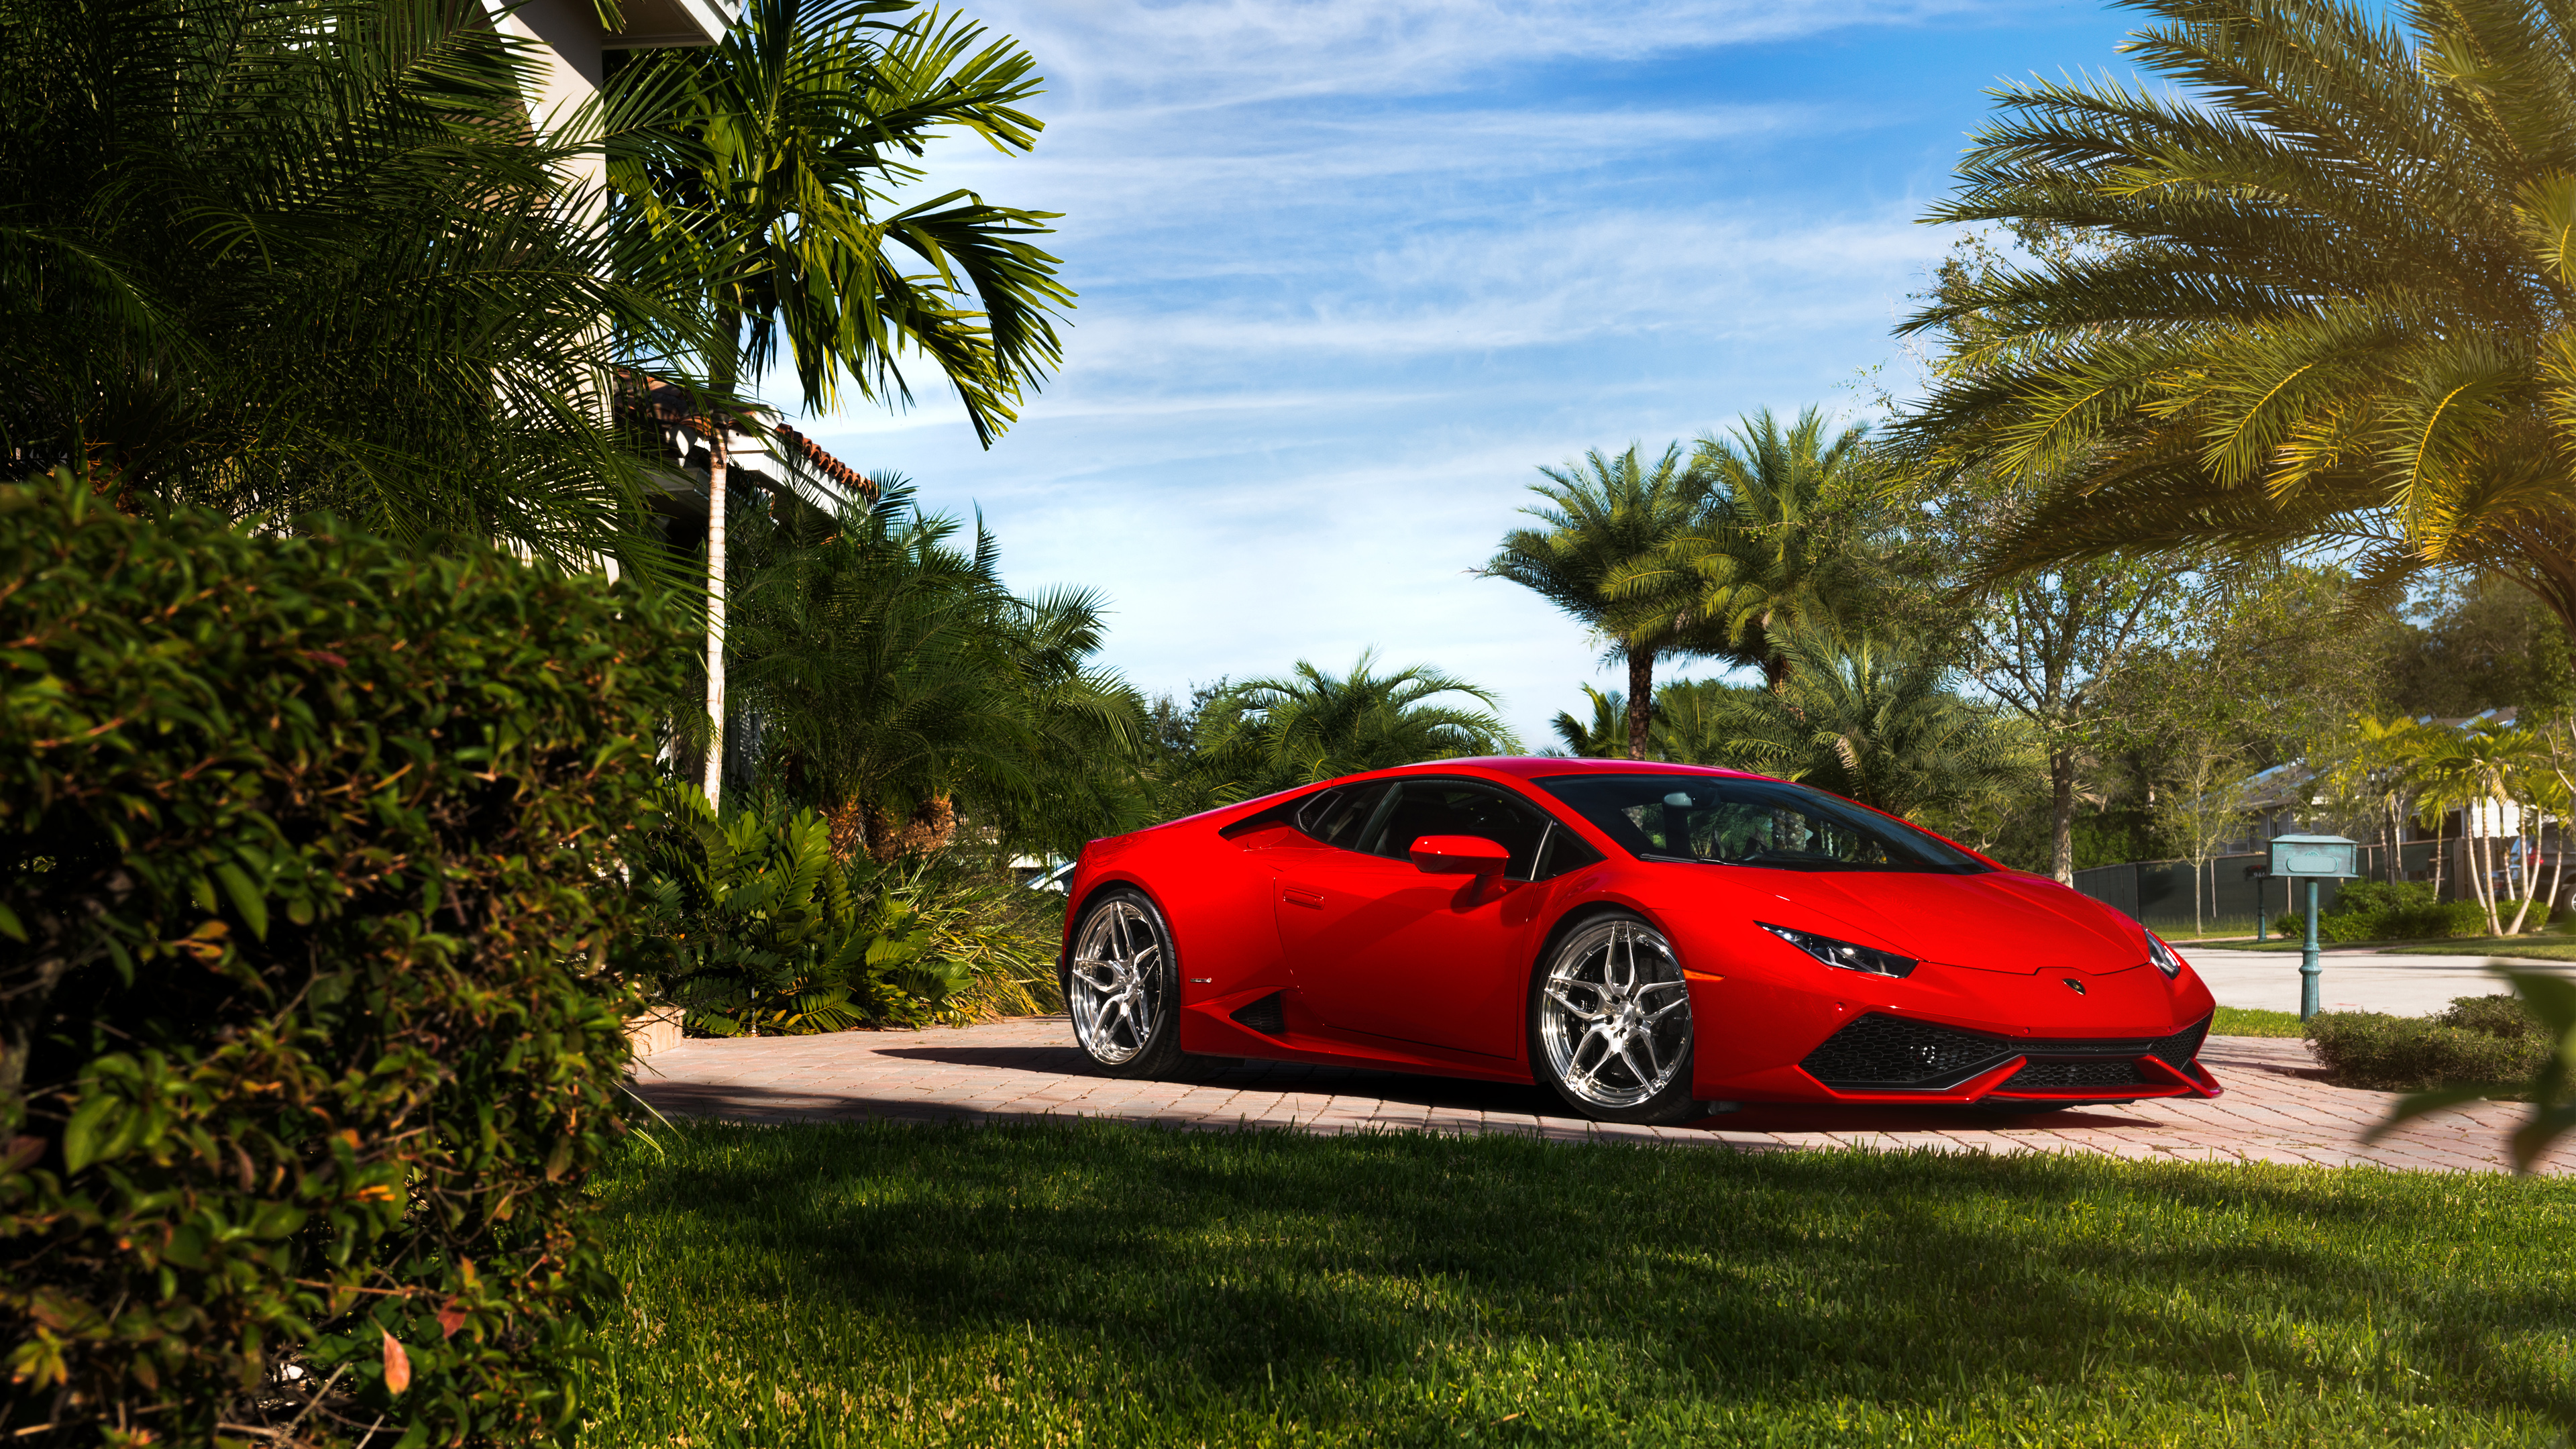 lamborghini aventador s roadster japan edition with Adv1 Lamborghini Huracan 2 Wallpapers on 1822246157 also Adv1 lamborghini huracan 2 Wallpapers besides 2013 Hyundai Santa Fe Active Elite And Highlander Launch Review together with Rowen Body Kit For Nissan 370z Is Filled With Jdm Goodness Photo Gallery 93342 additionally Lamborghini Sg.